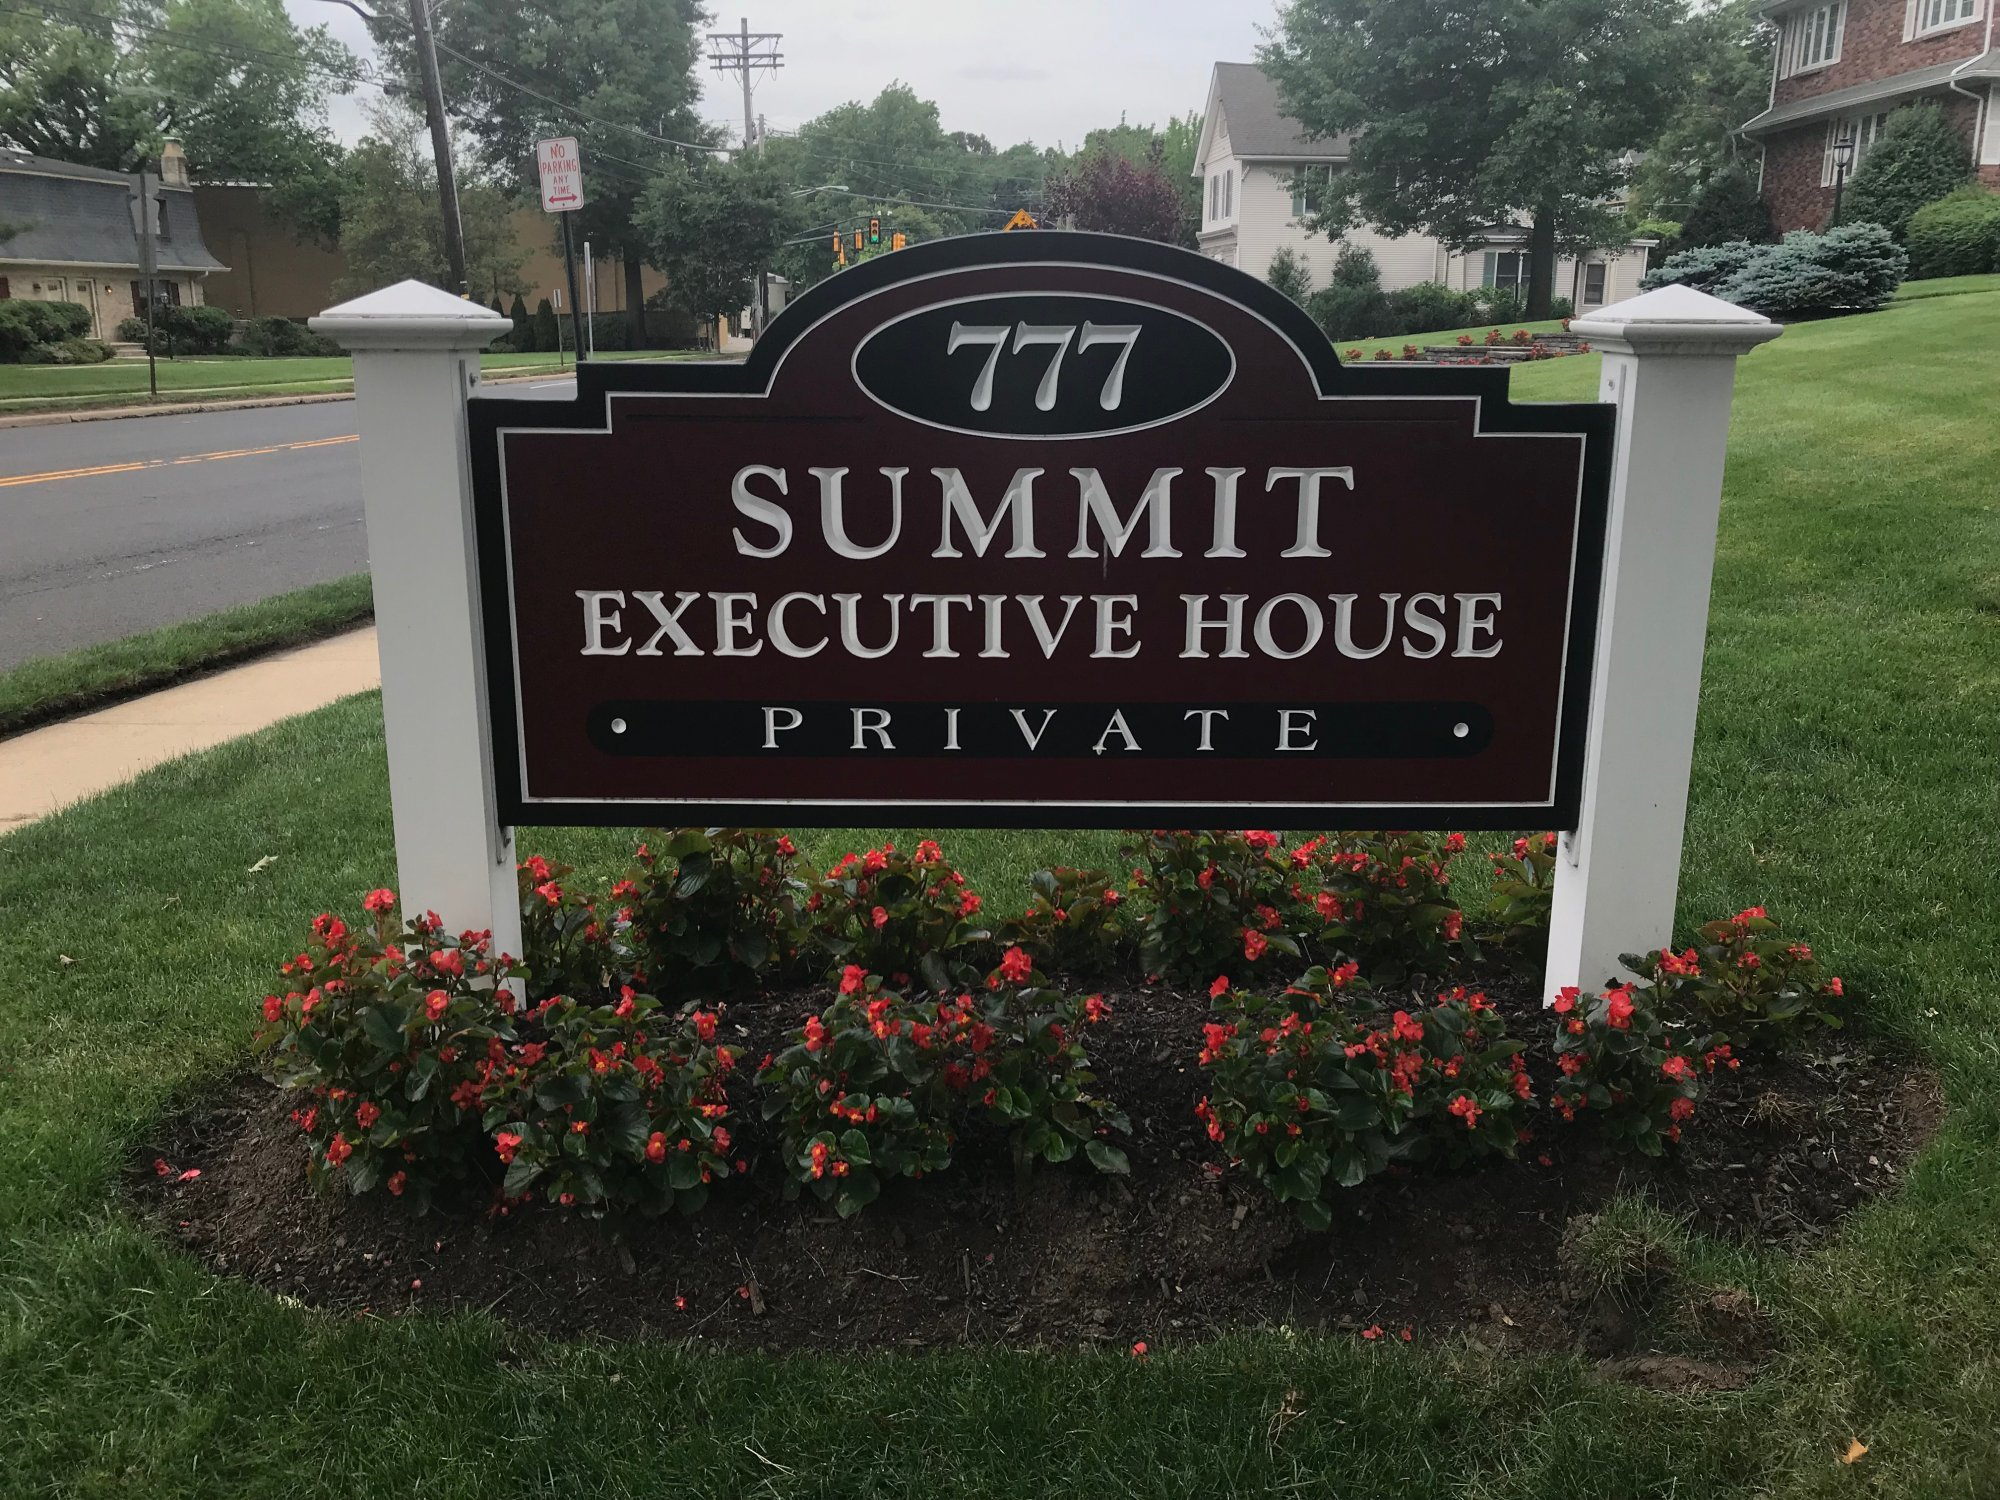 Townhomes for sale Summit Executive House Townhomes Summit, NJ